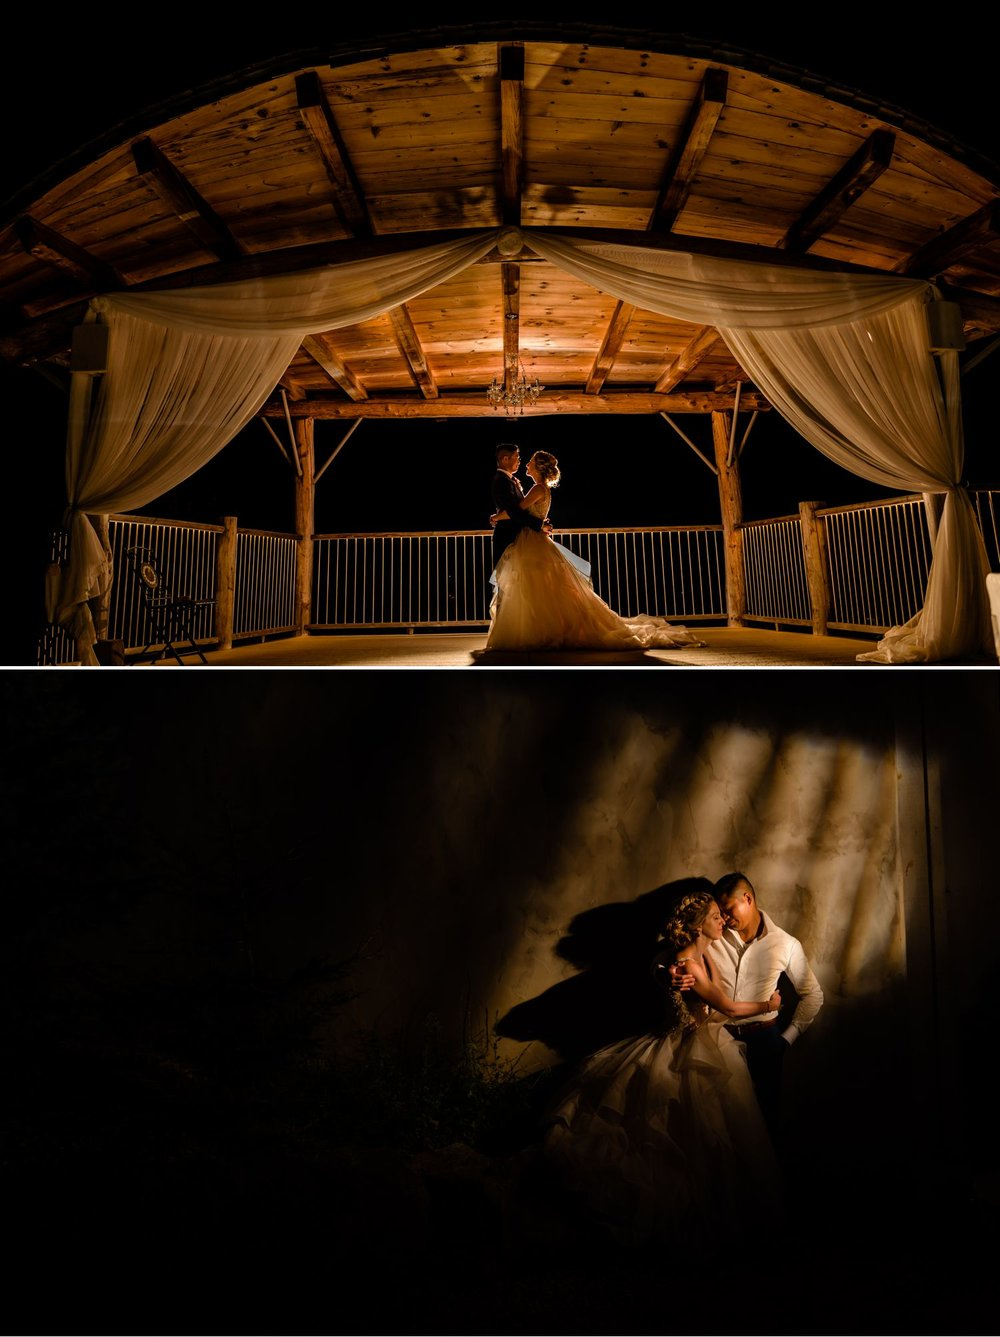 nightime portraits of bride and groom at a le belvedere wedding in wakefield quebec